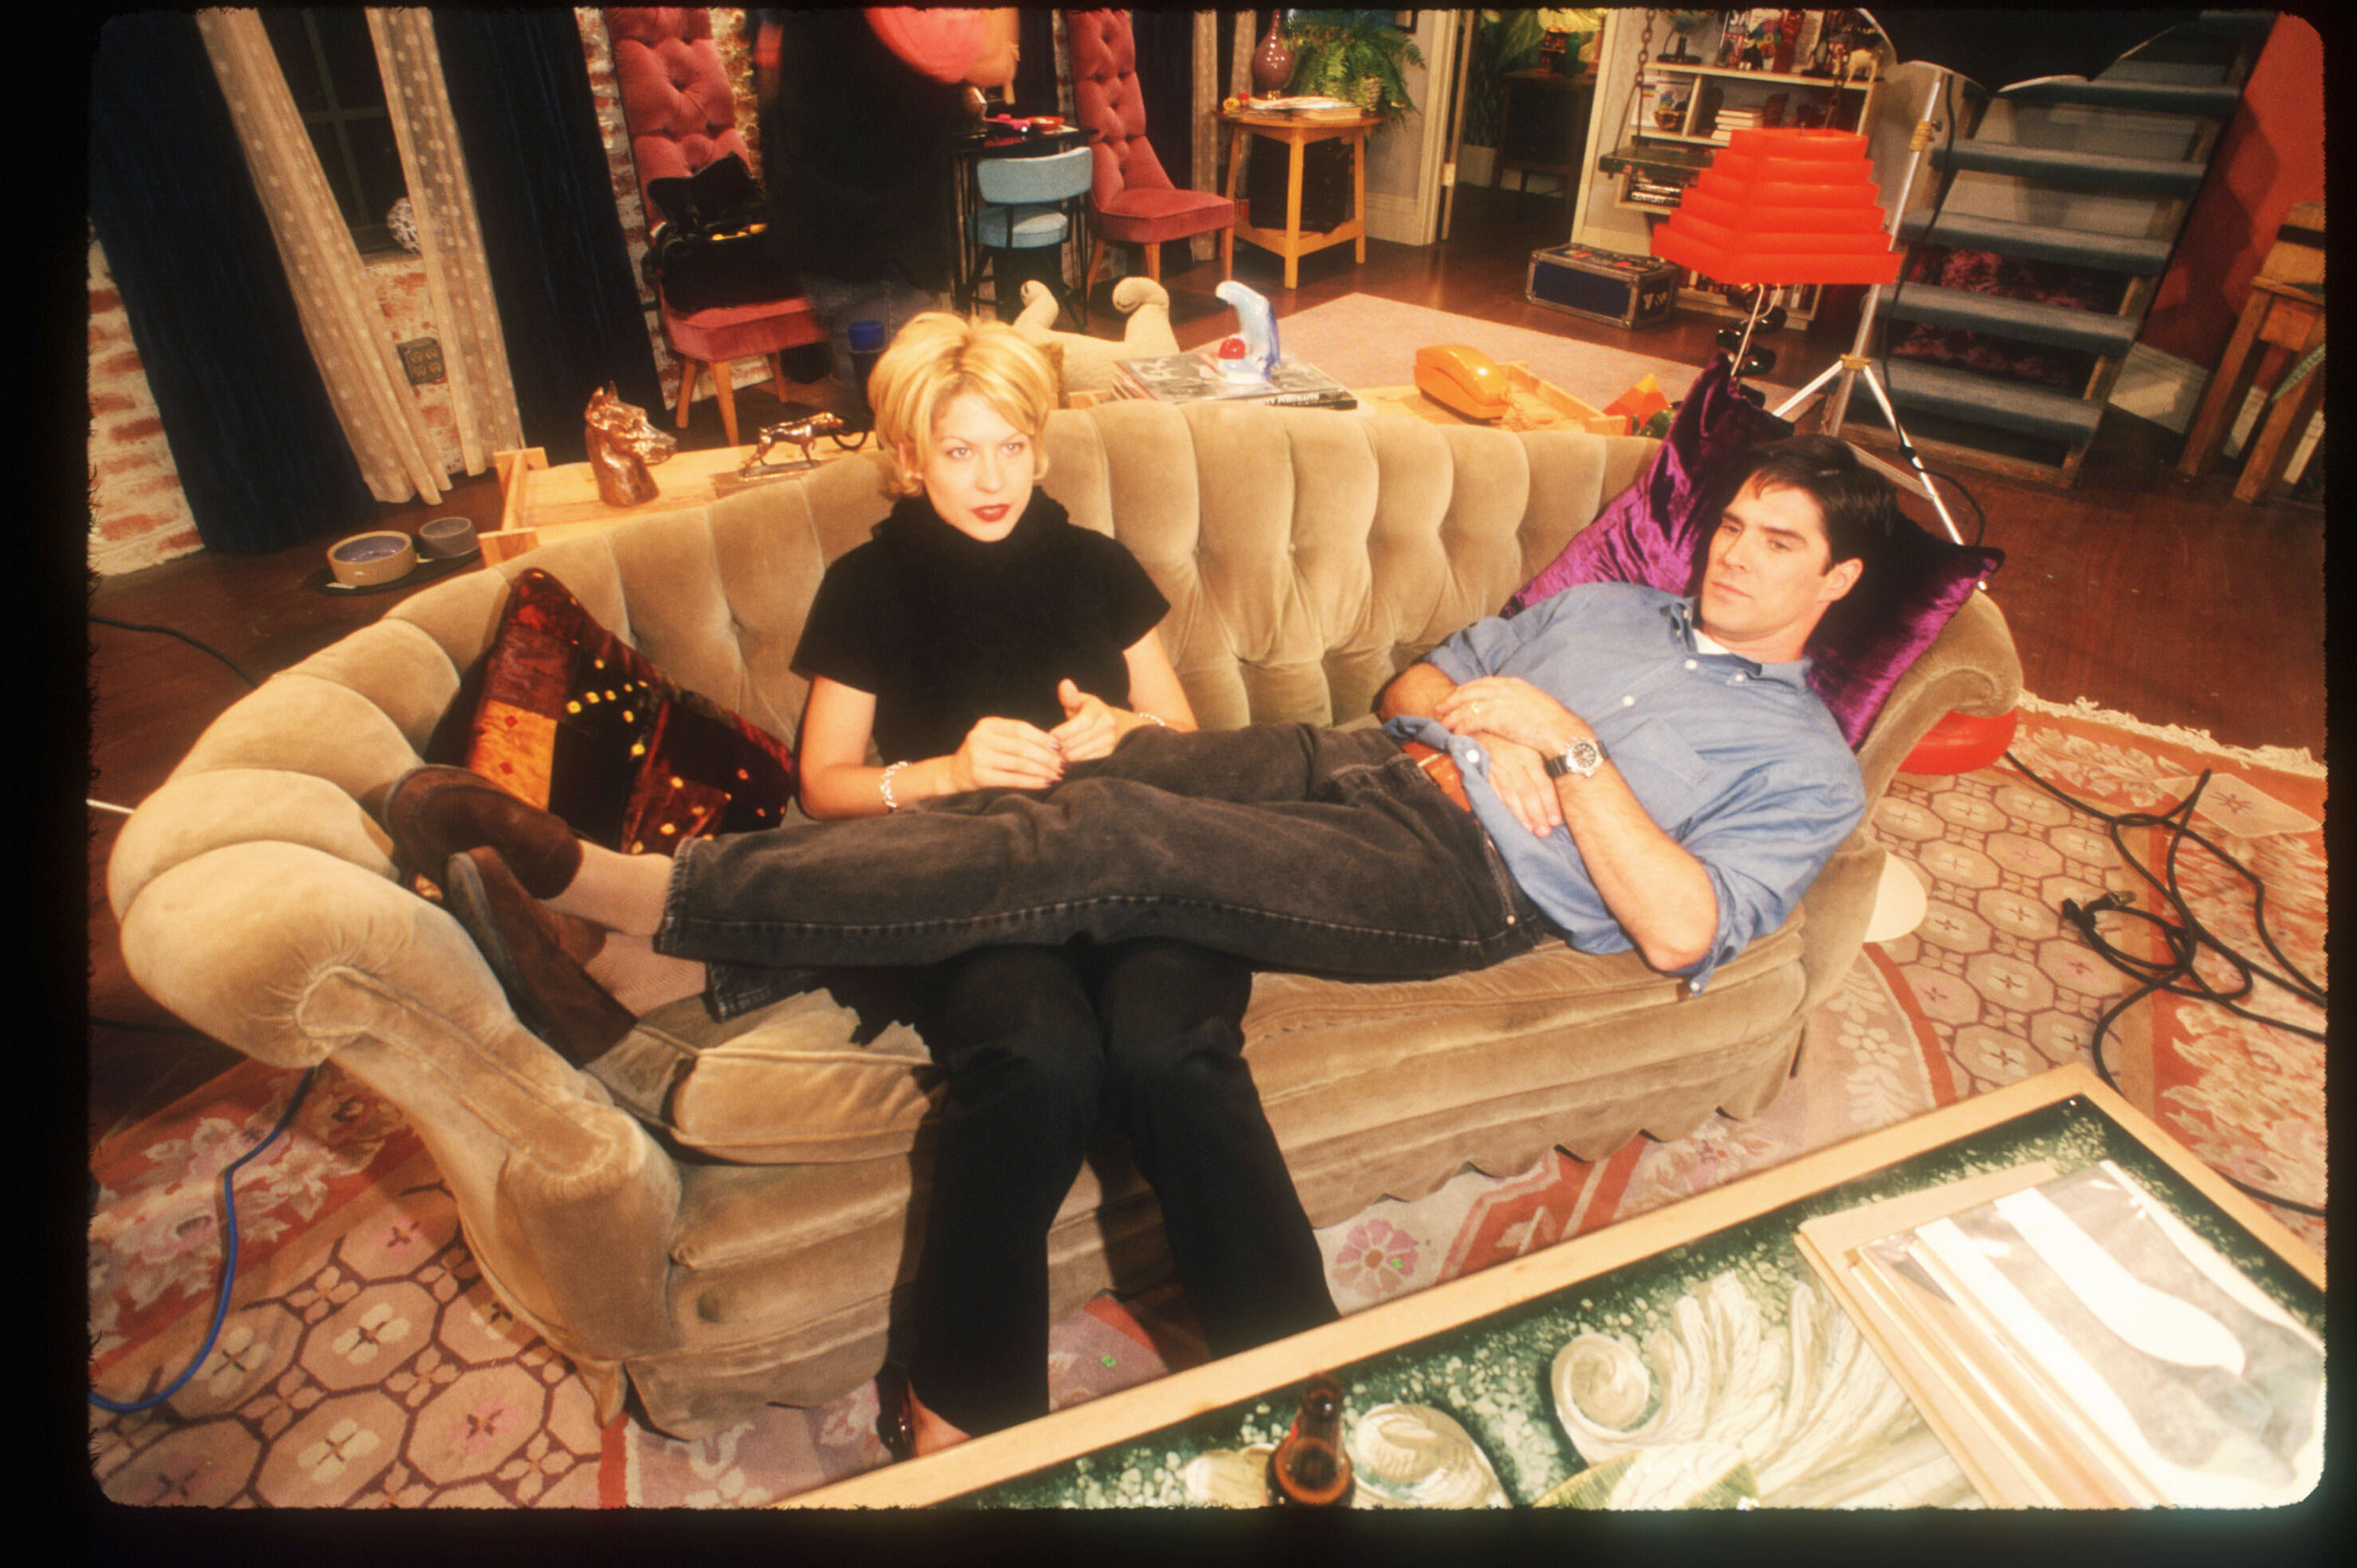 Thomas Gibson Images Tg In Dharma And Greg Behind The Scenes Hd Wallpaper Background Photos